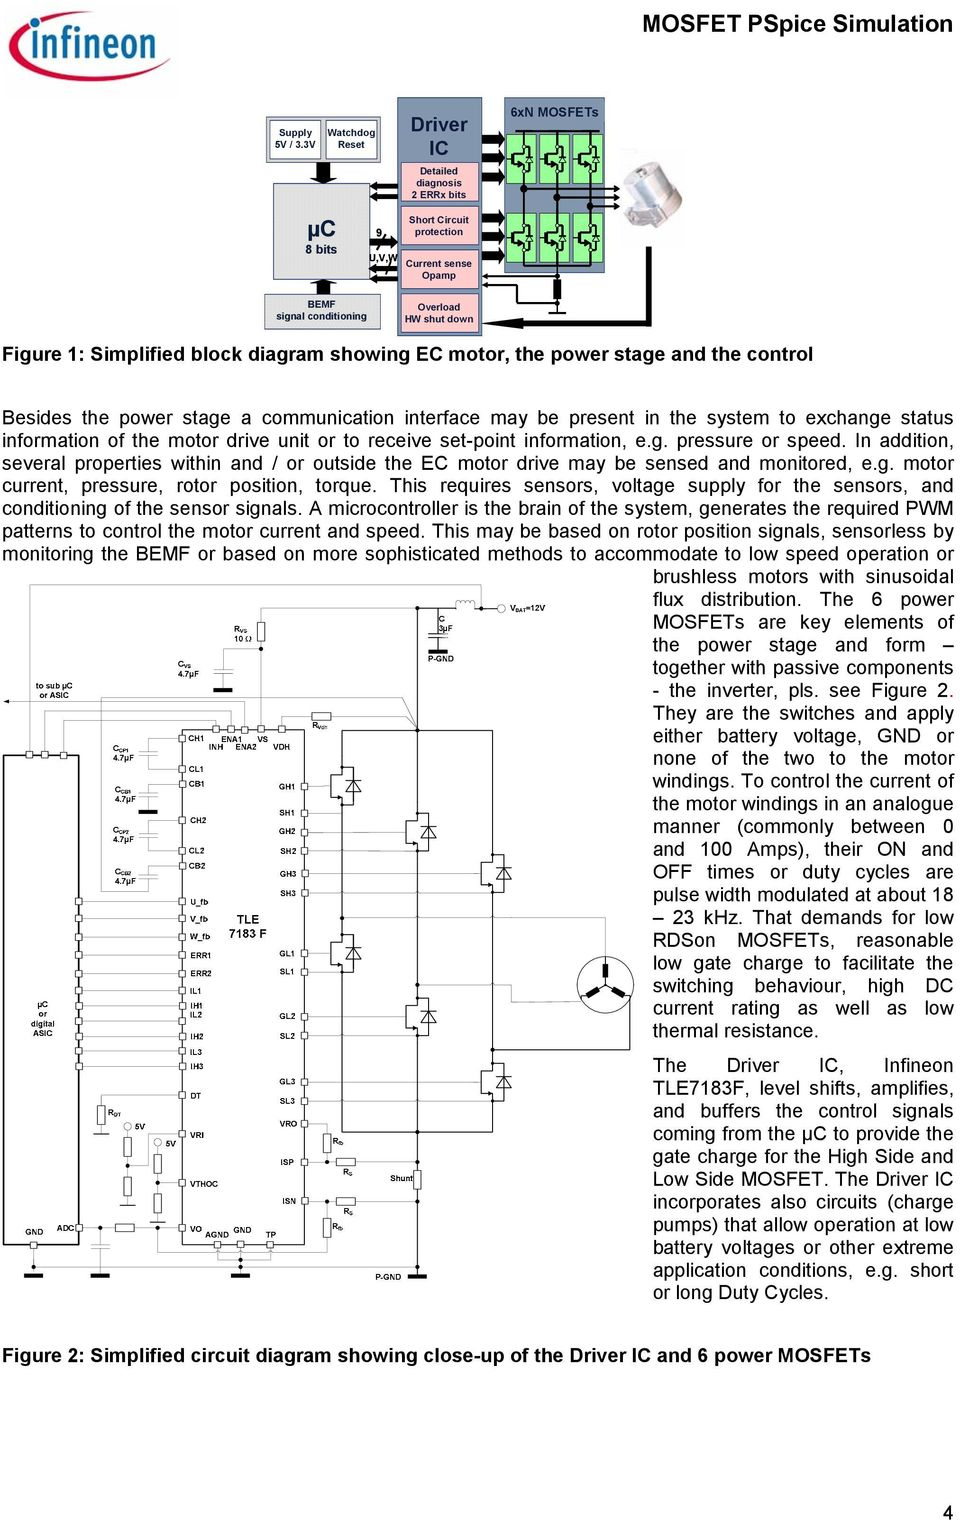 Simulation With Pspice Pdf Voltage Converter Circuit Using Tda2003 Simplified Block Diagram Showing Ec Motor The Power Stage And Control Besides